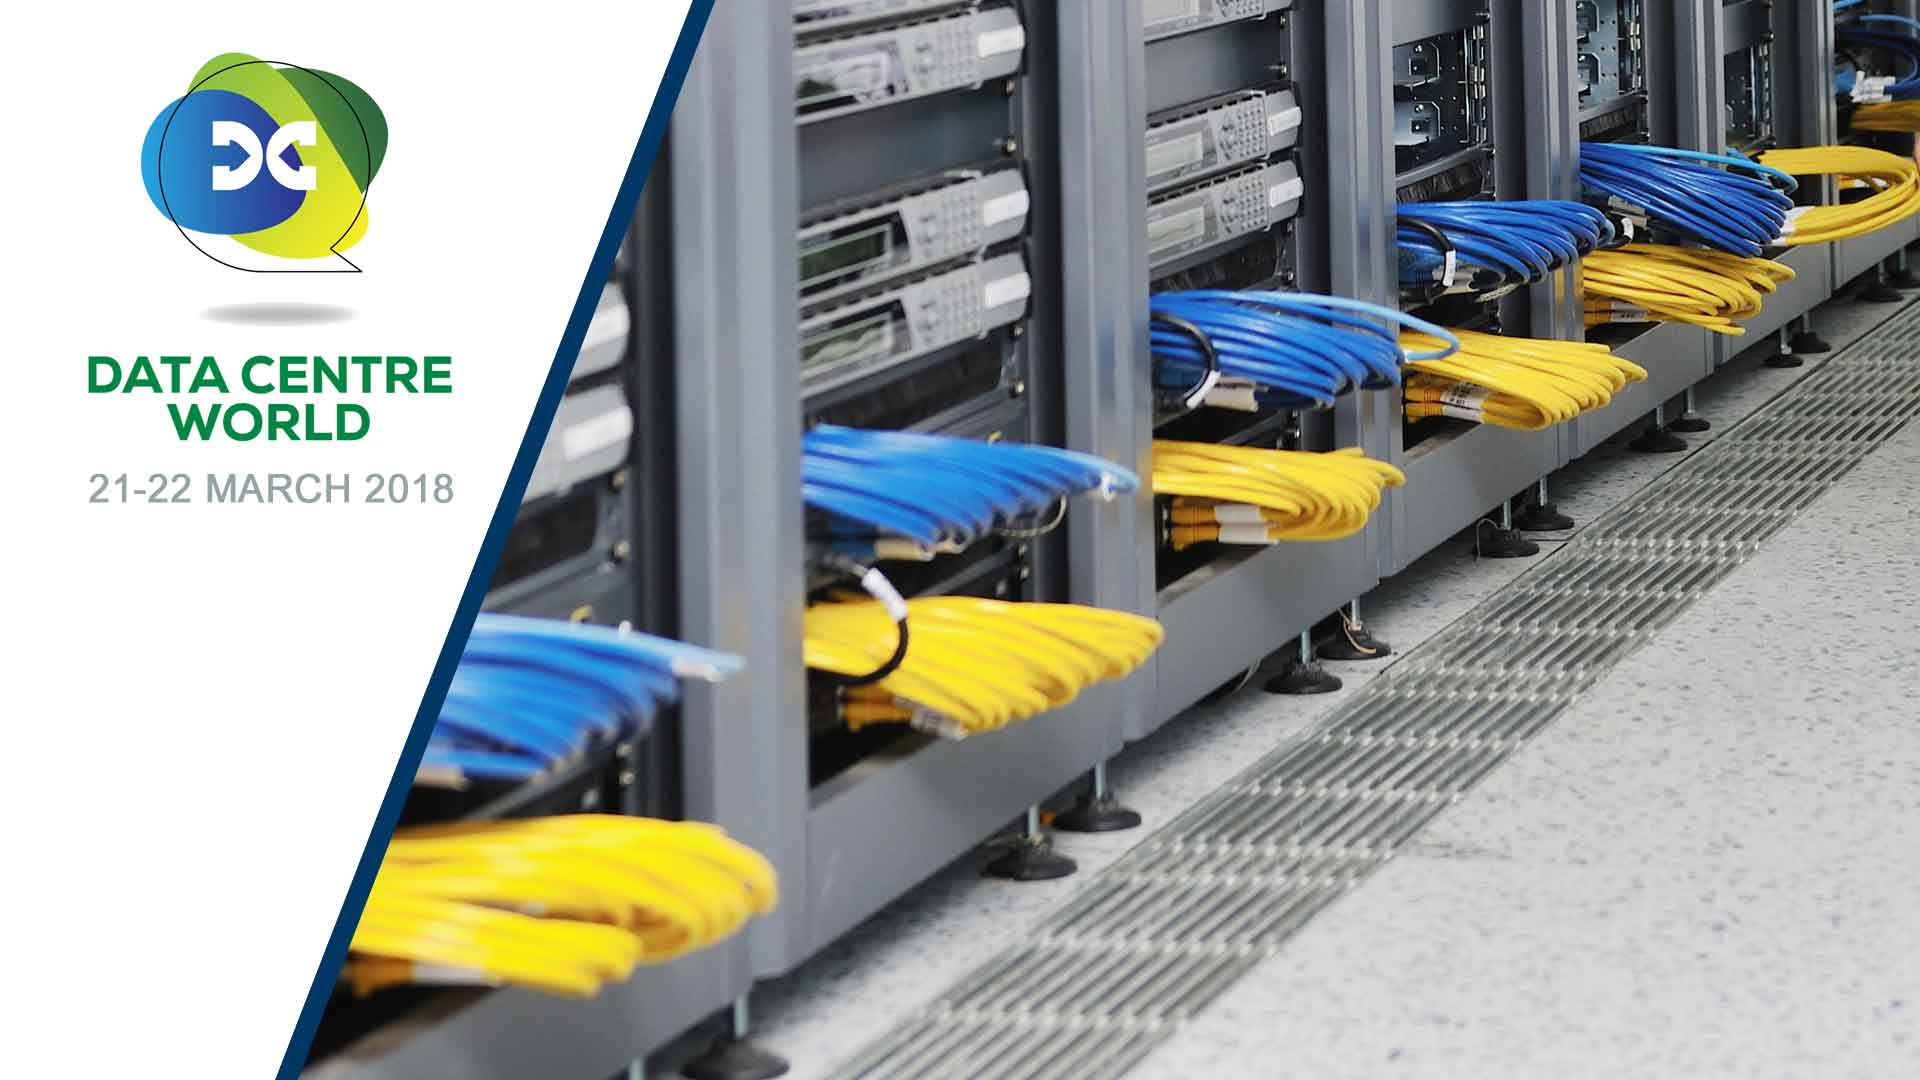 Services and Technology Solutions for Data Centres